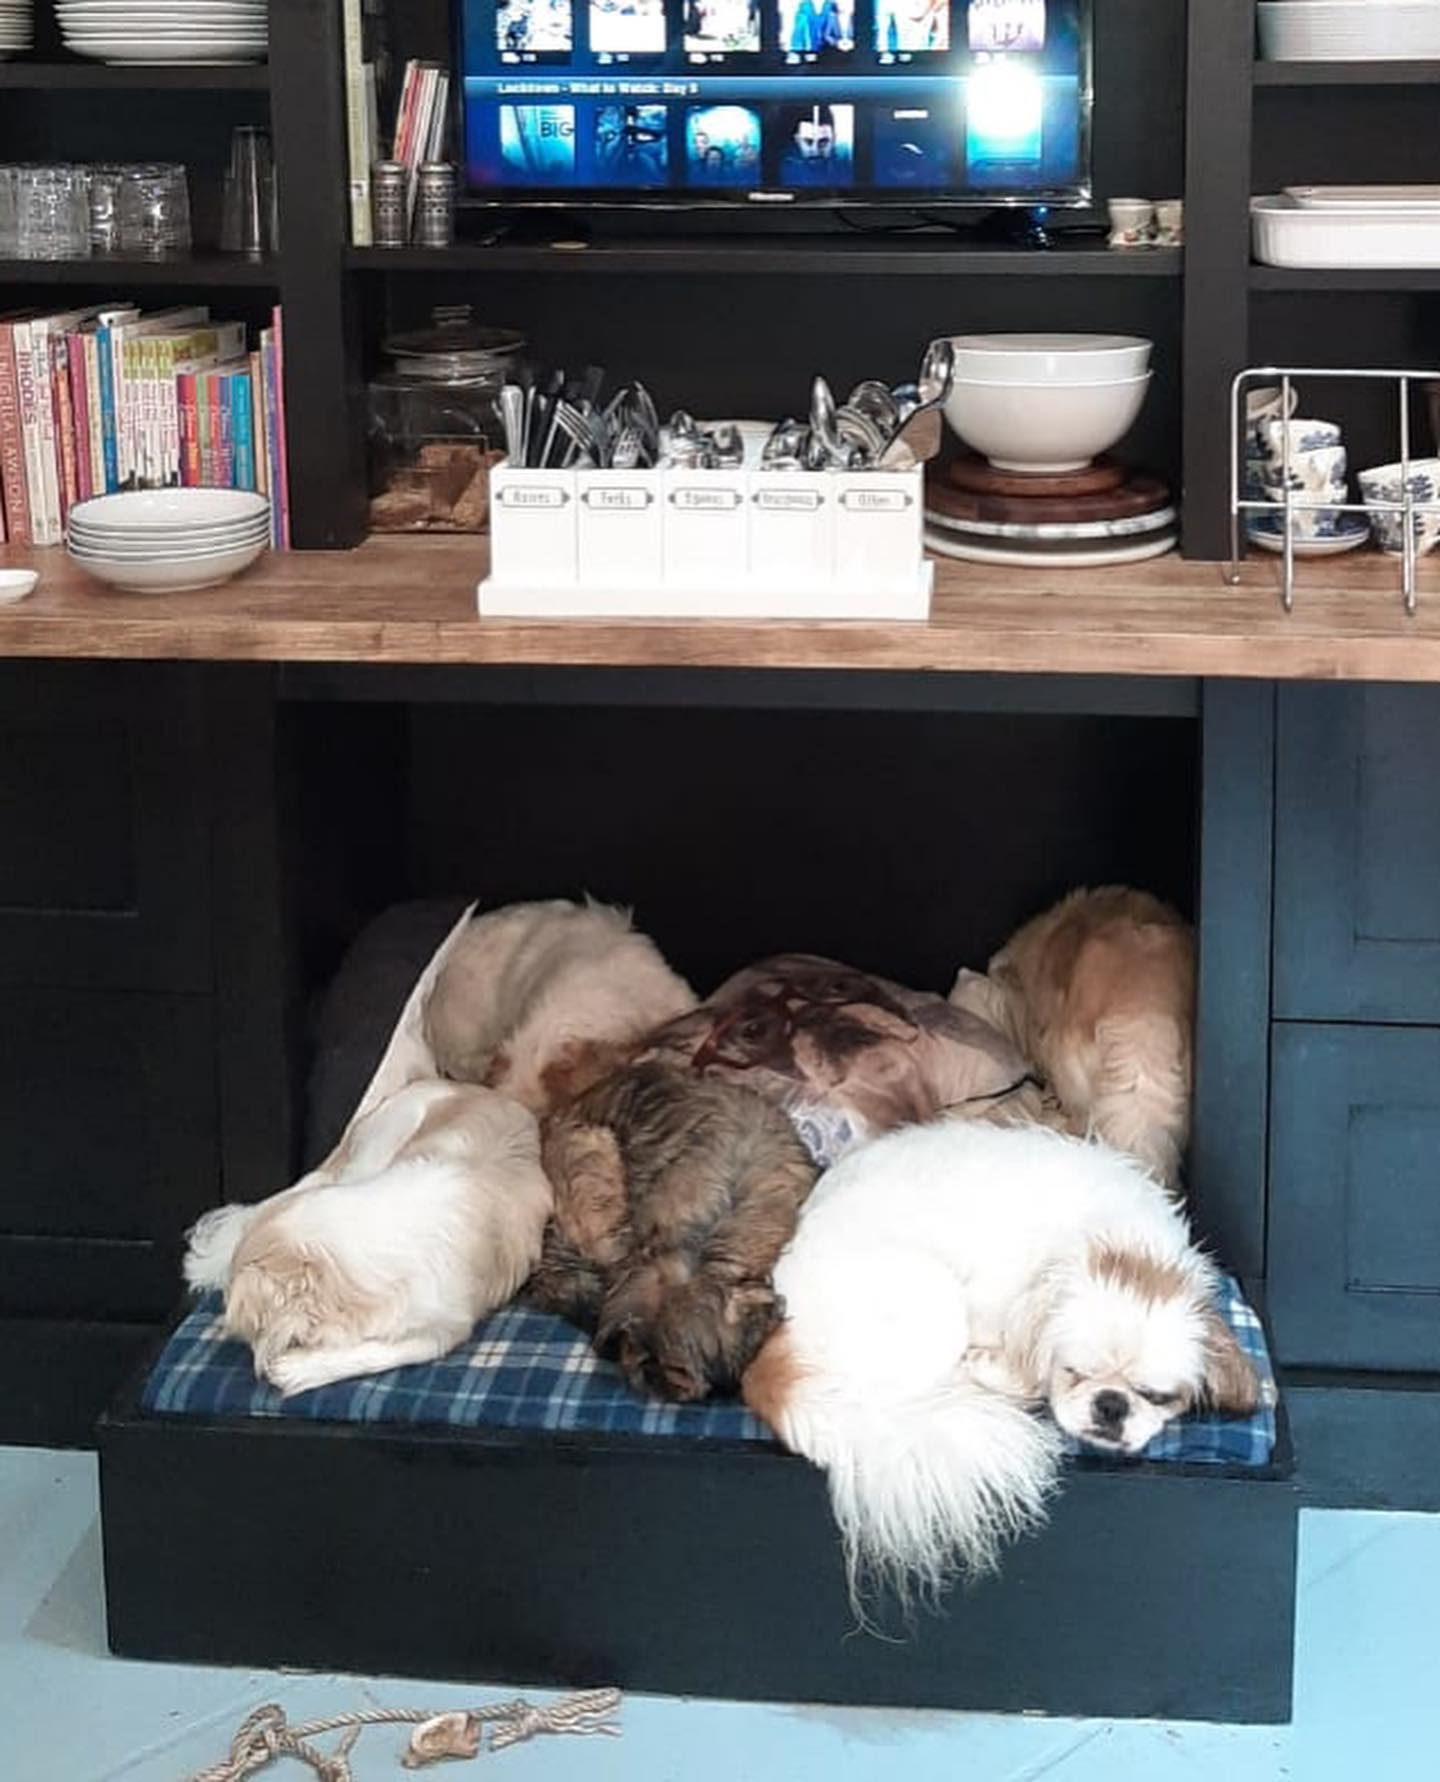 Dogs enjoying their bed